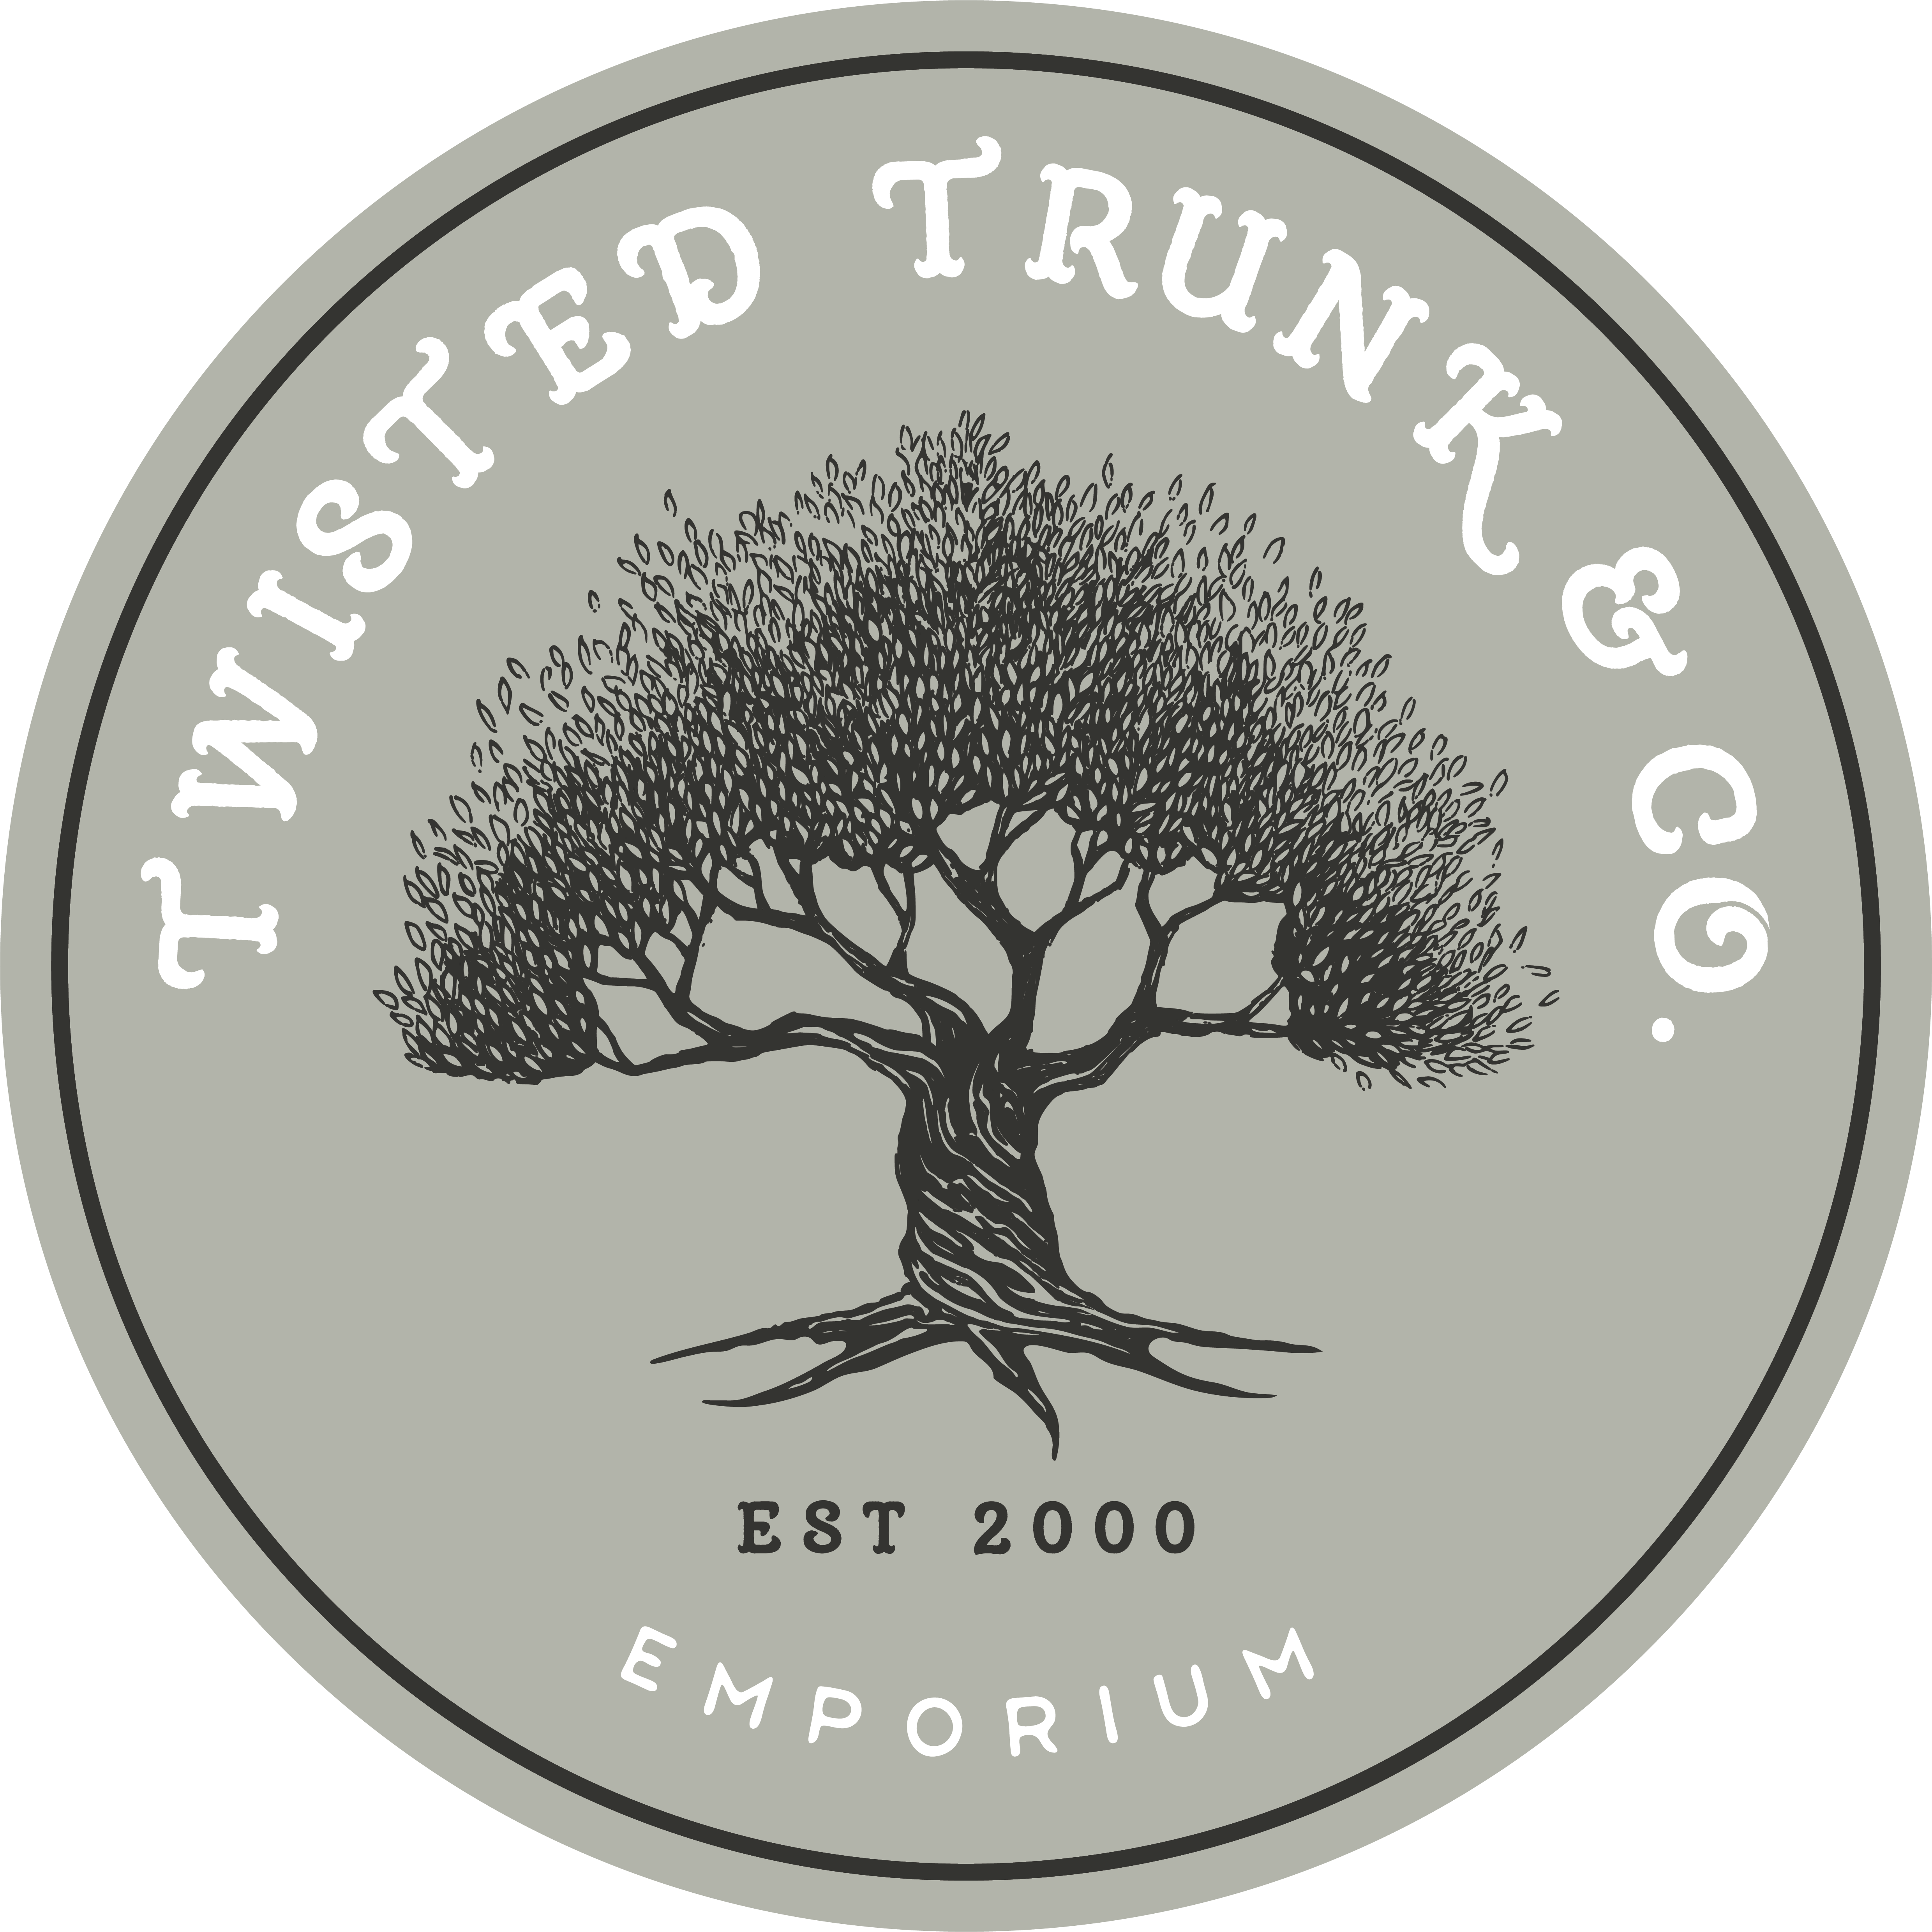 Twisted Trunk & Co. Catering and Special Events